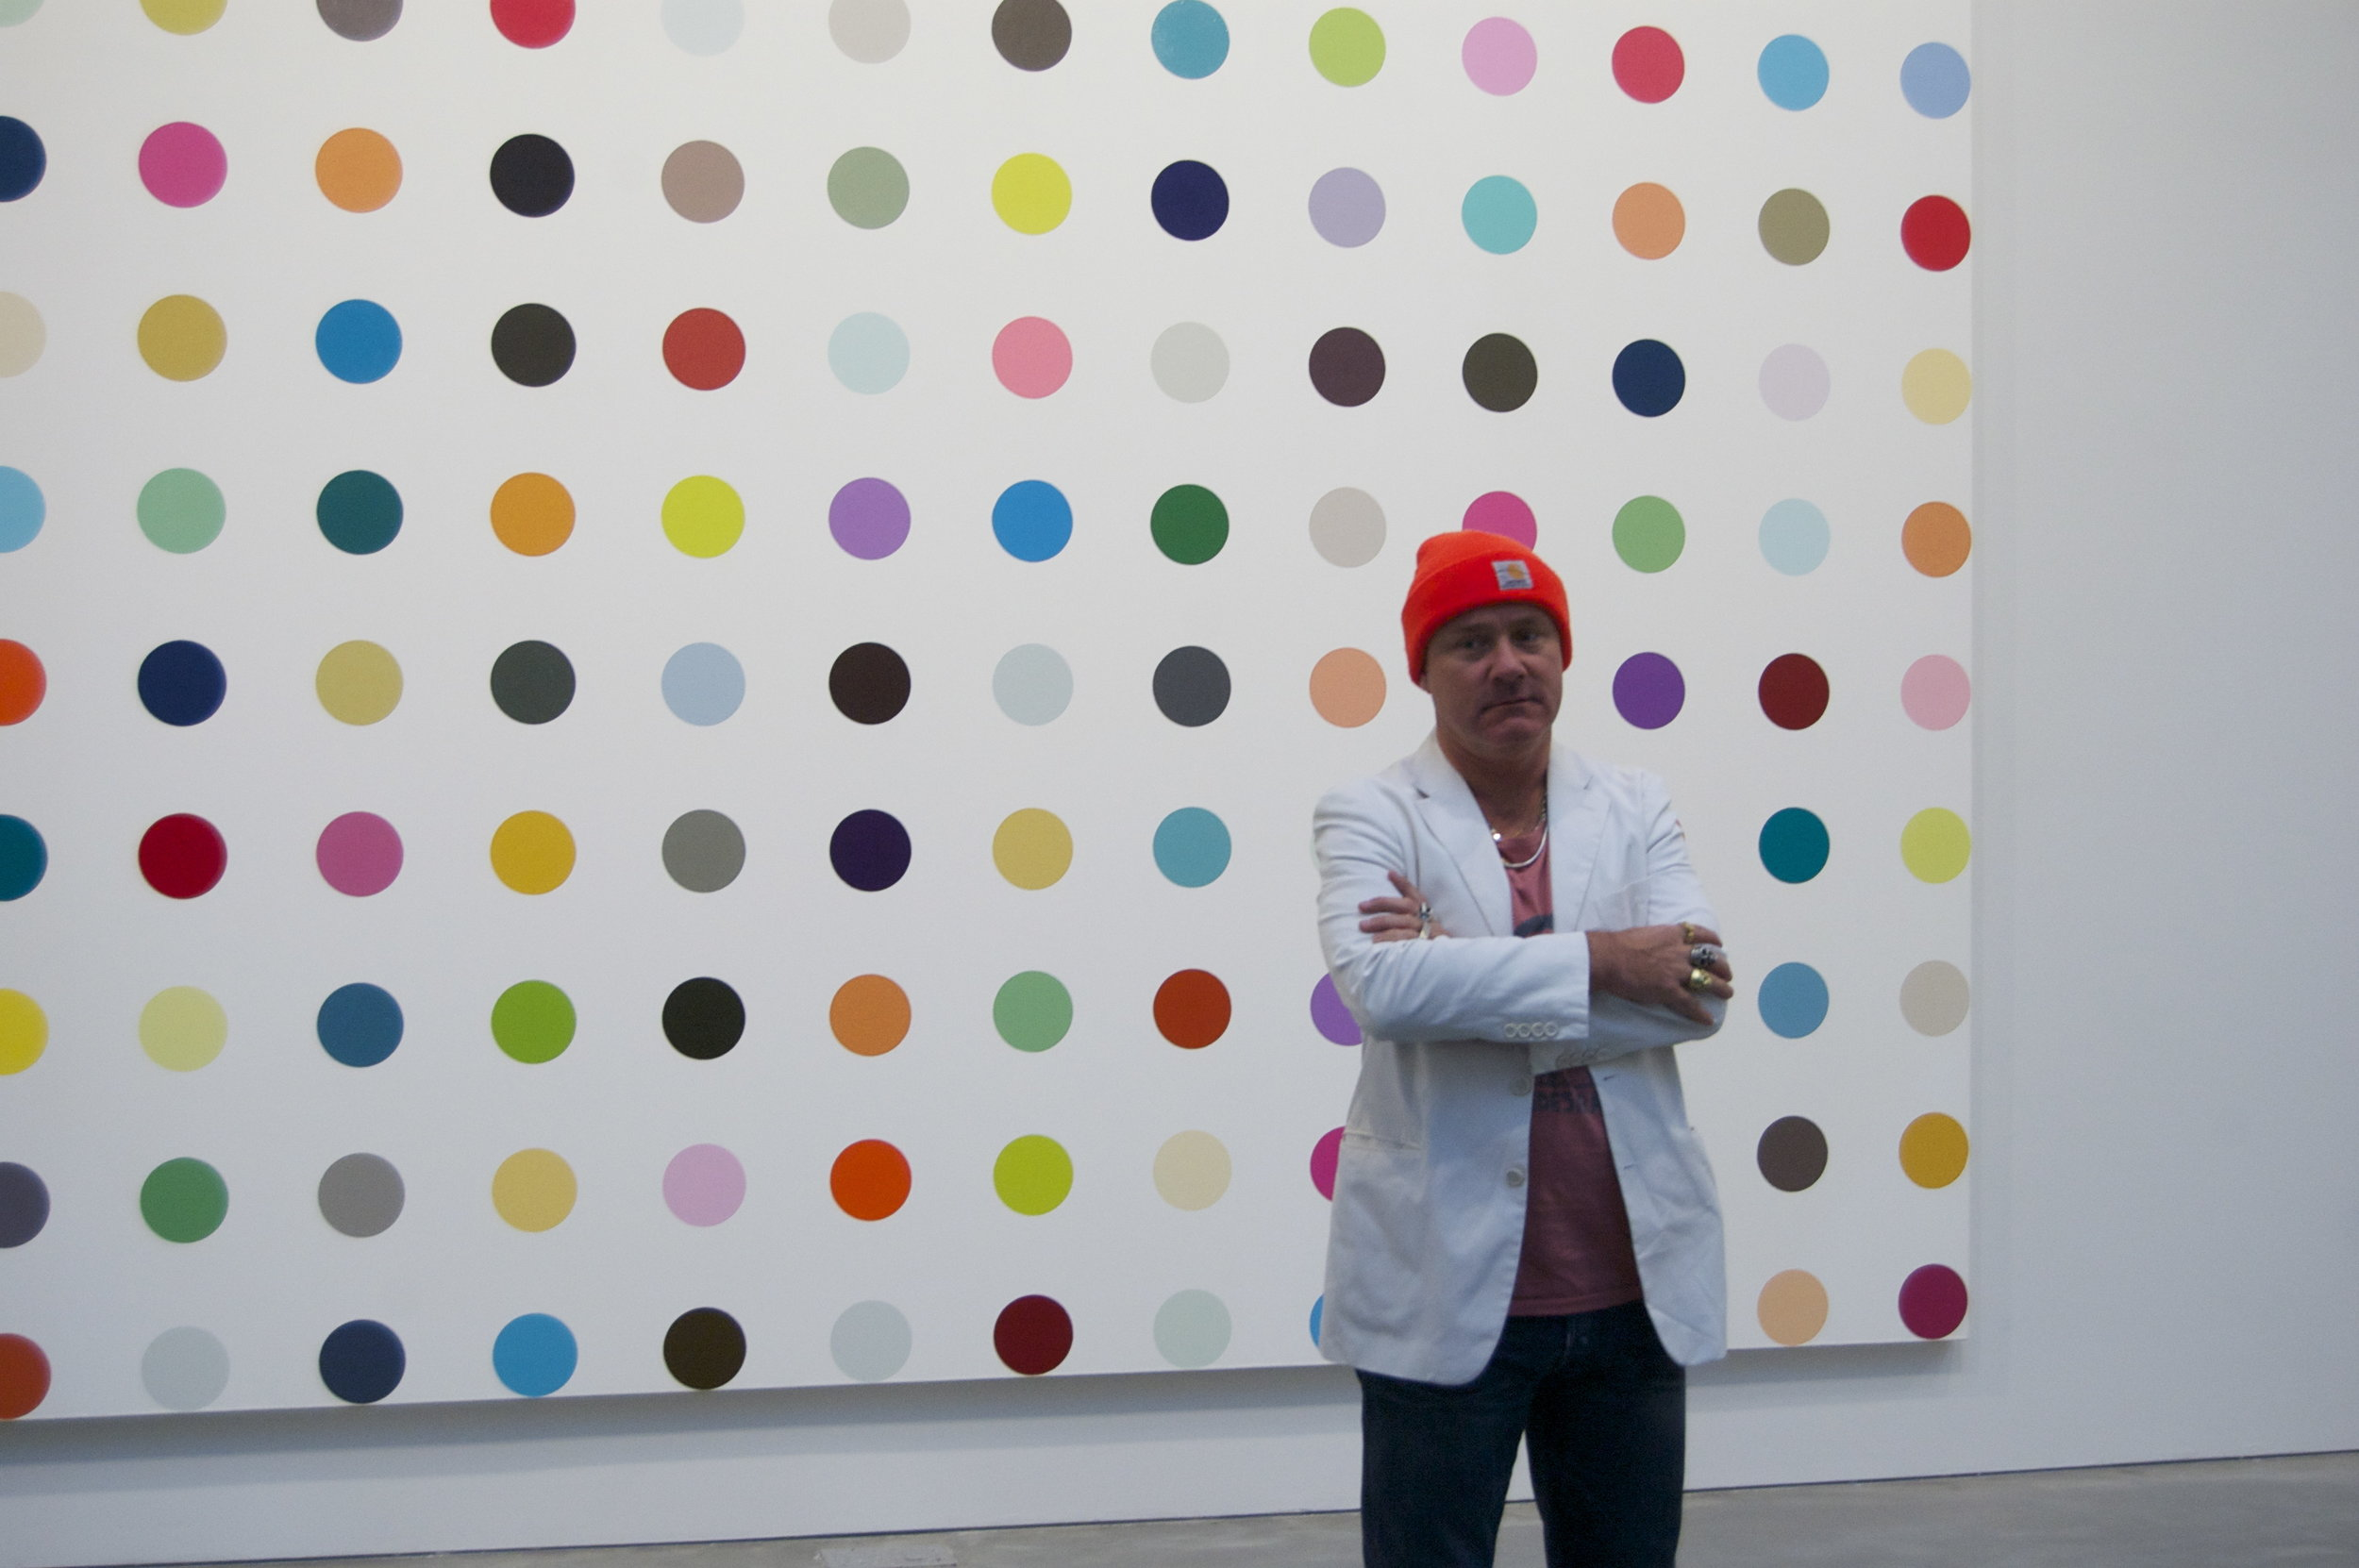 Artist Damian Hirst posing in front of  Oleoylsarcosine , the world's most valuable joke. (Photo by Andrew Russeth.)